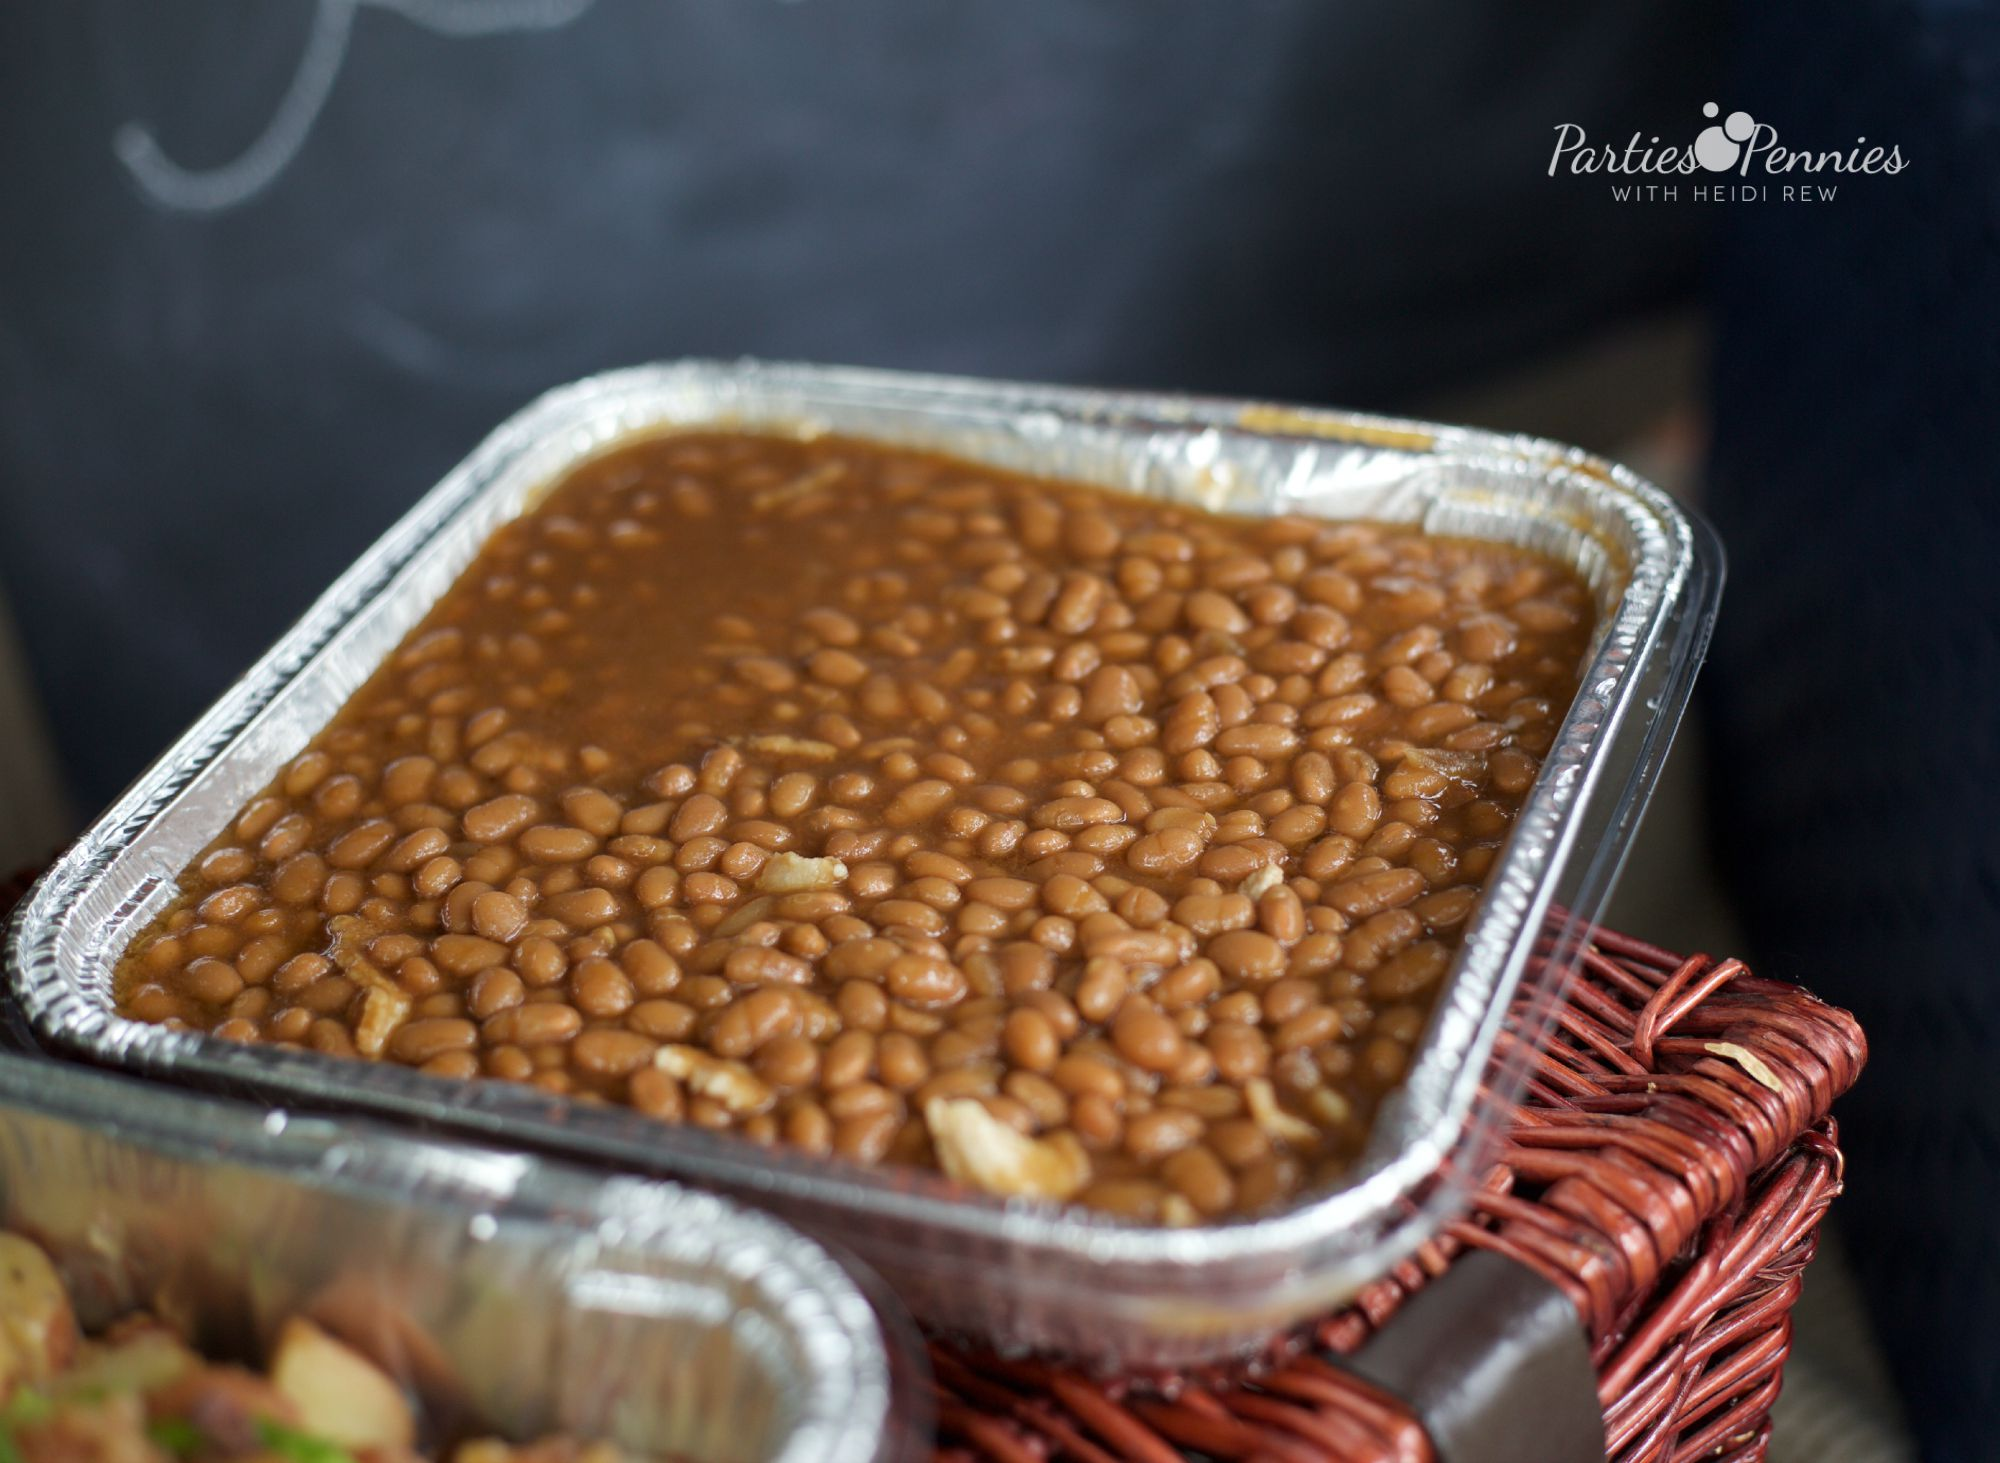 Coca-Cola Fall Football Sam's Club | How to Throw a Tailgate Party | Coca-Cola Baked Beans Recipe| PartiesforPennies.com | #tailgate #floridagators #universityofflorida #shareyourspirit